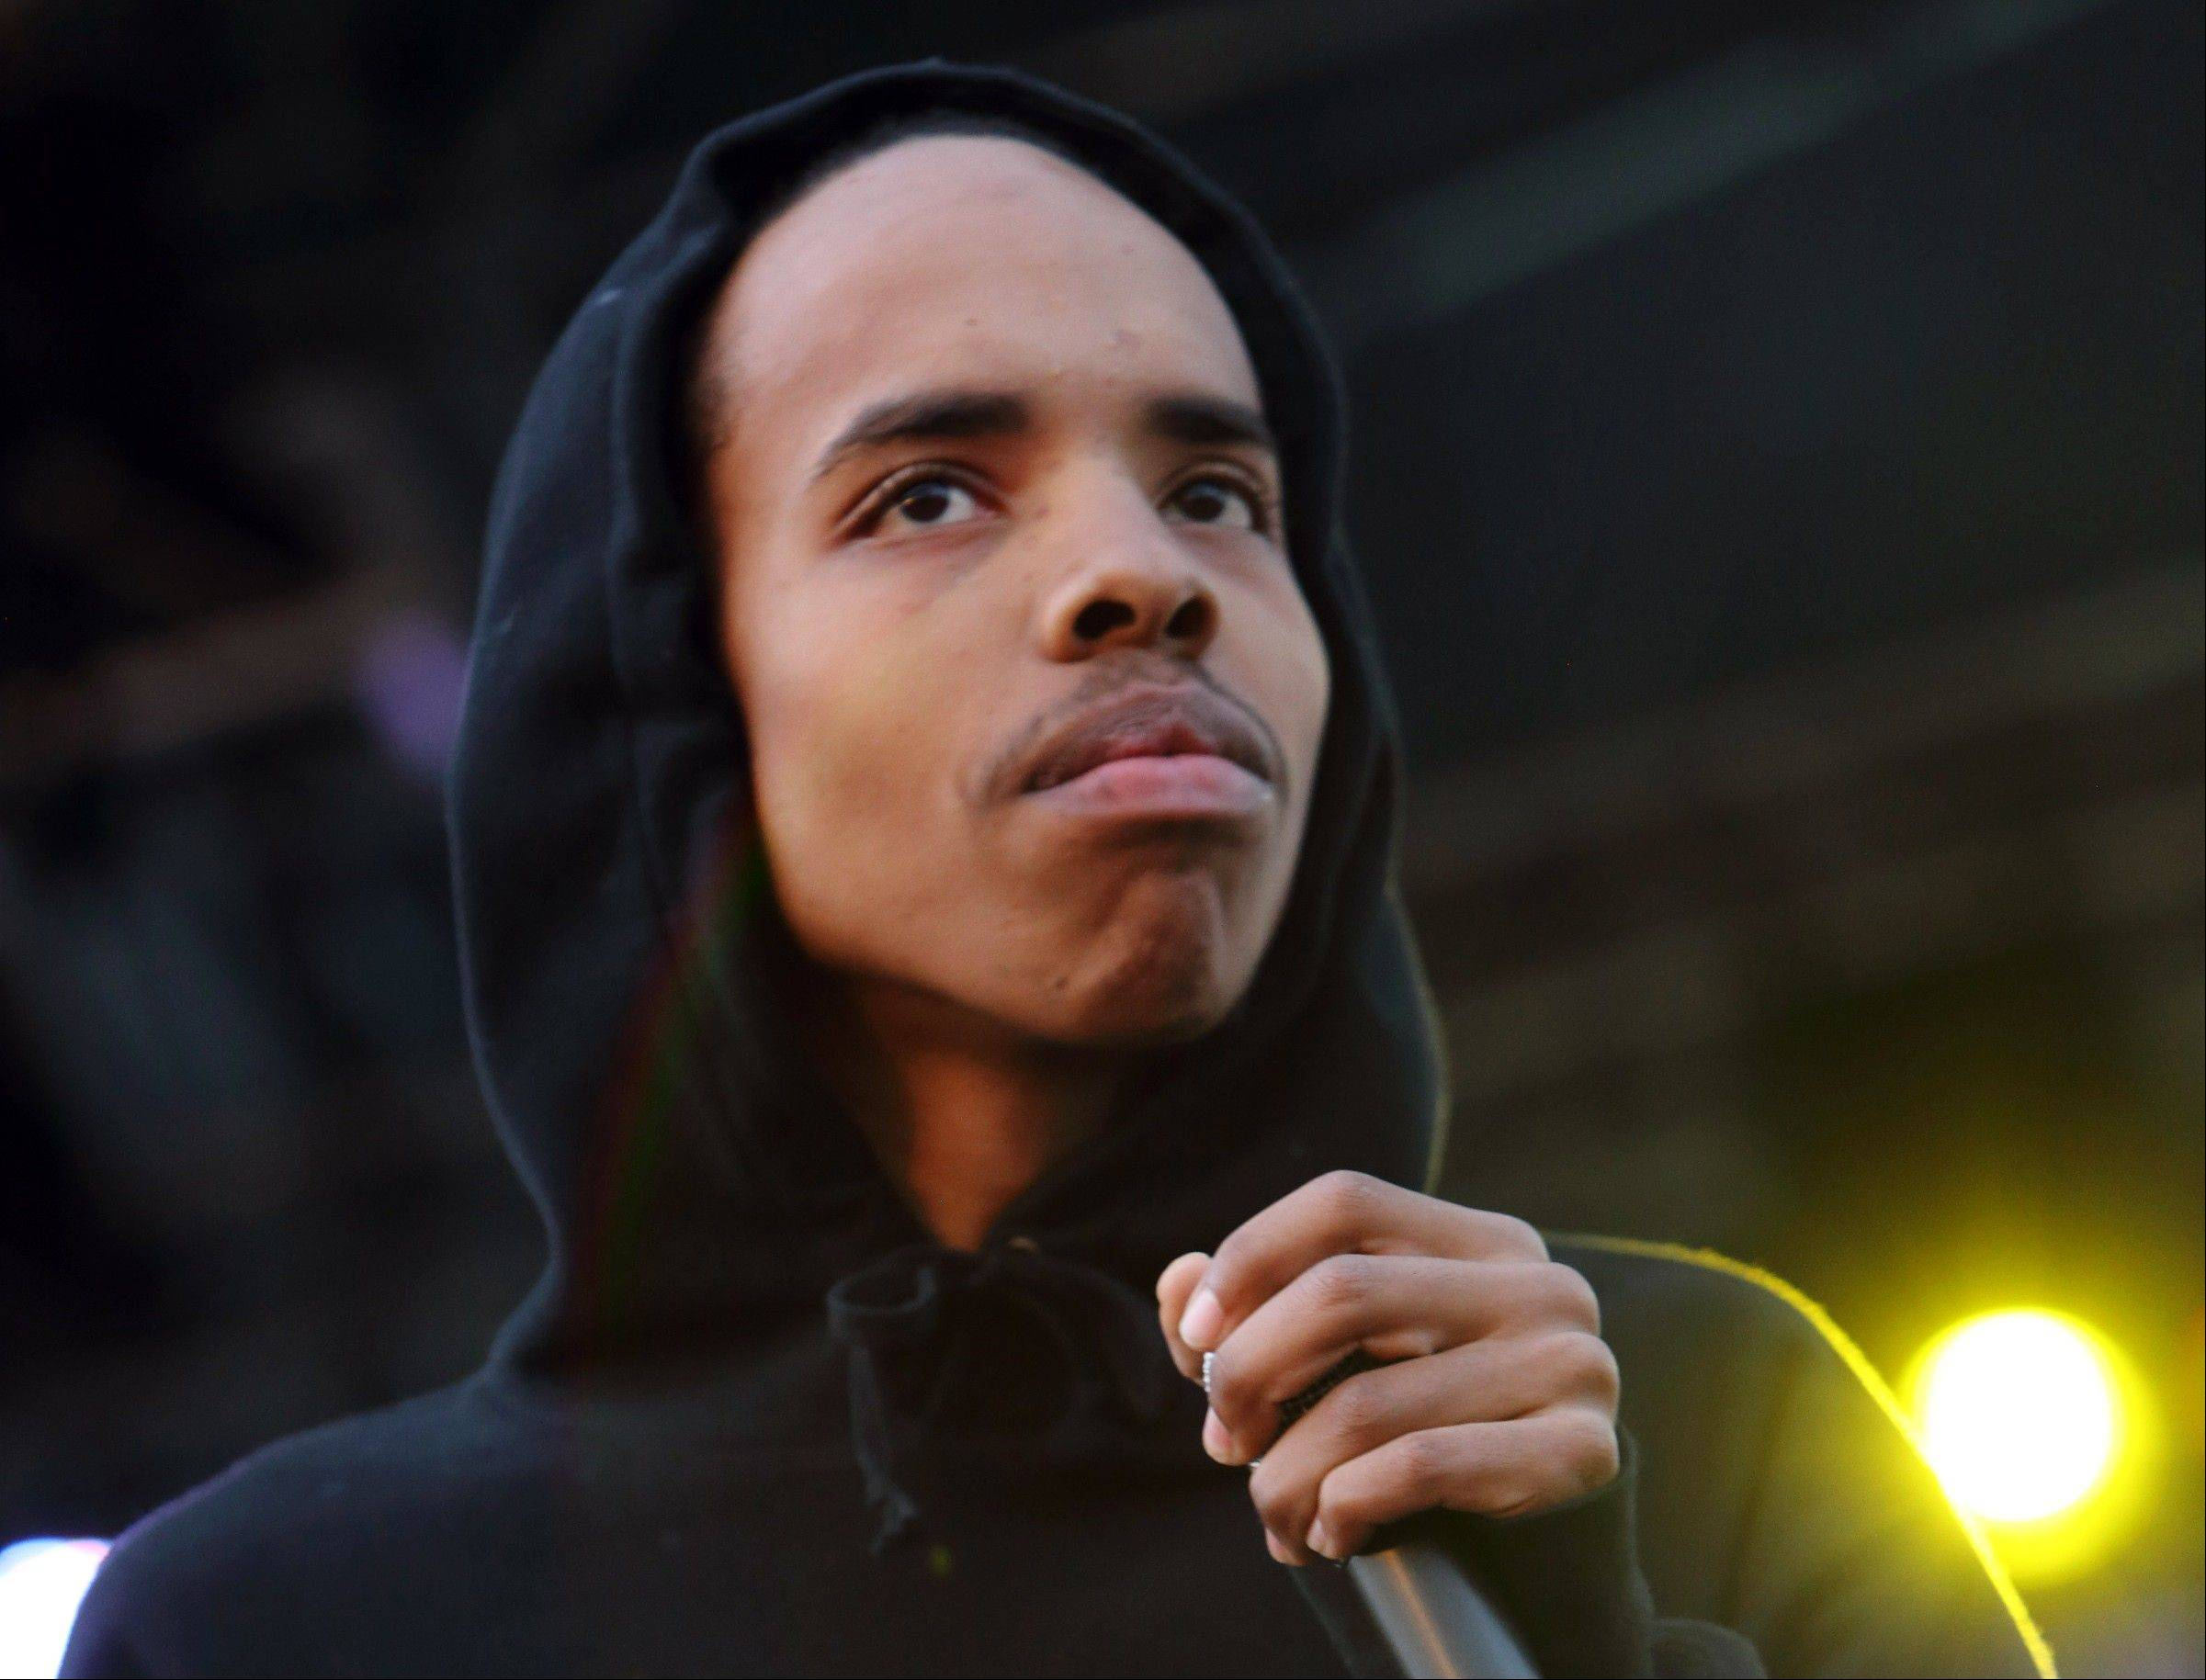 Earl Sweatshirt performs at The Sasquatch! Music Festival in George, Wash.